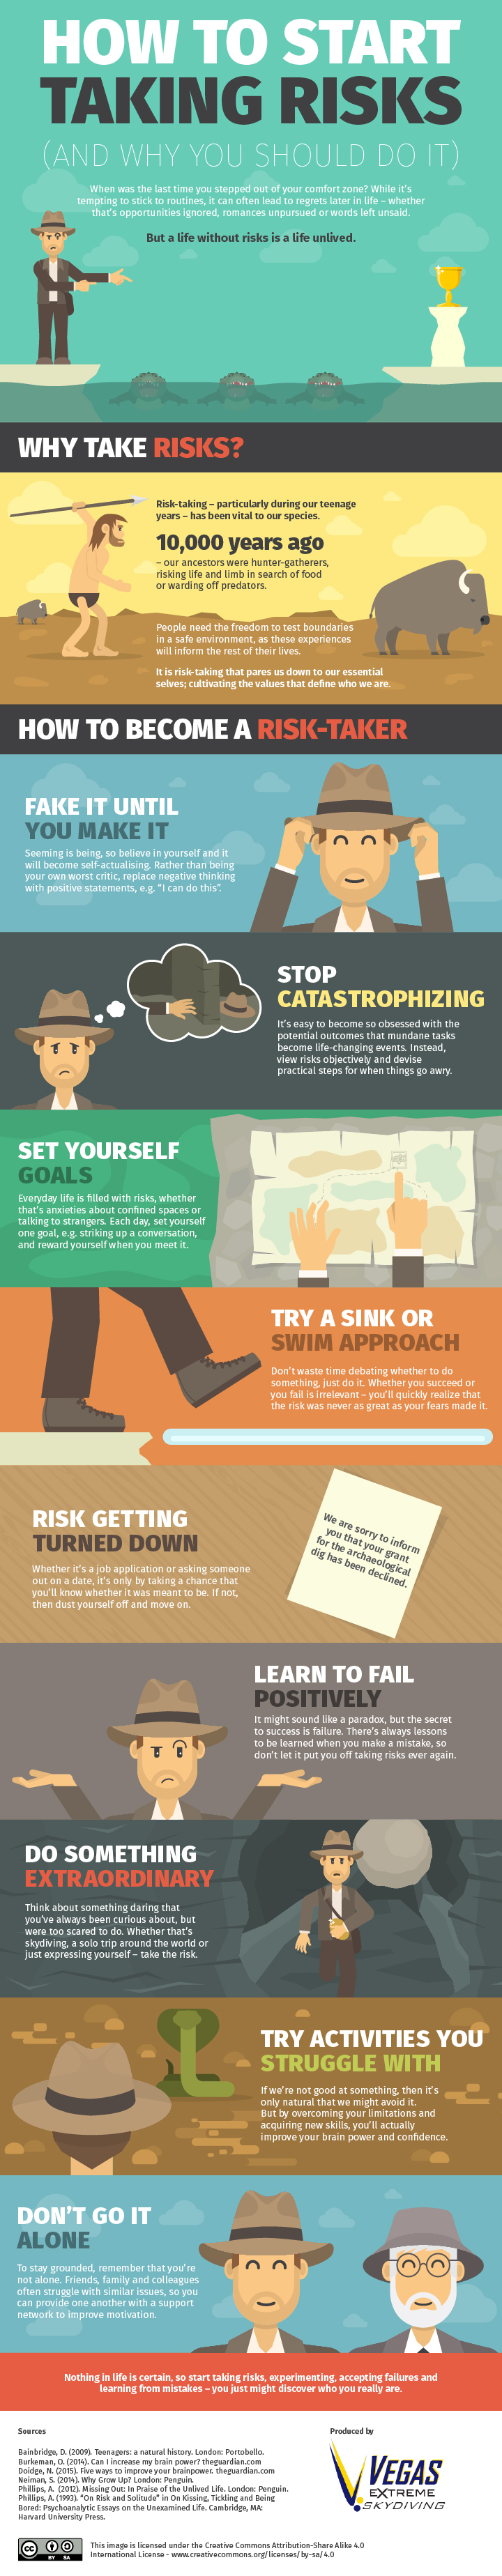 Taking Risks Infographic